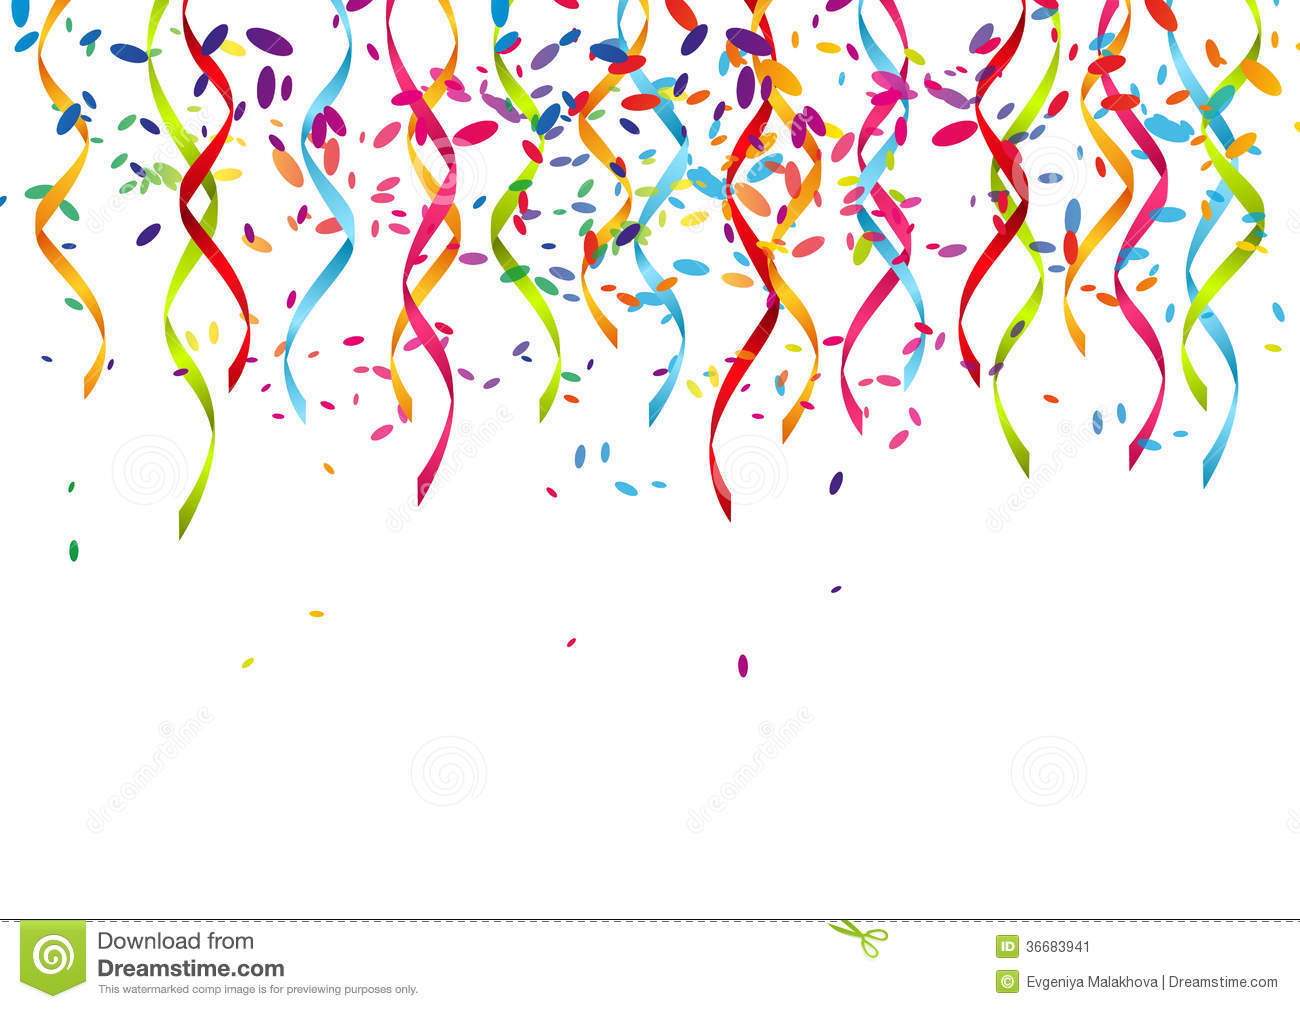 party-background-color-ribbons-36683941.jpg